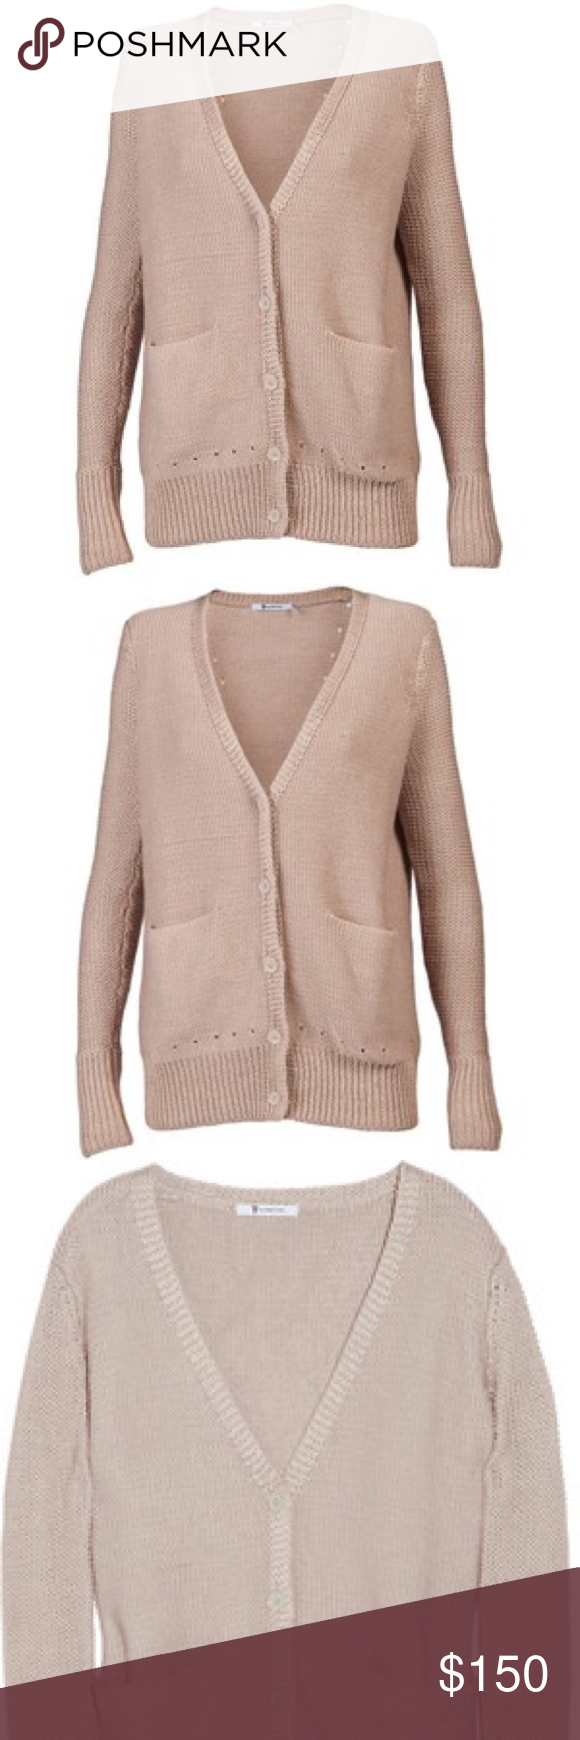 T by Alexander Wang Cotton Knit Cardigan Sweater